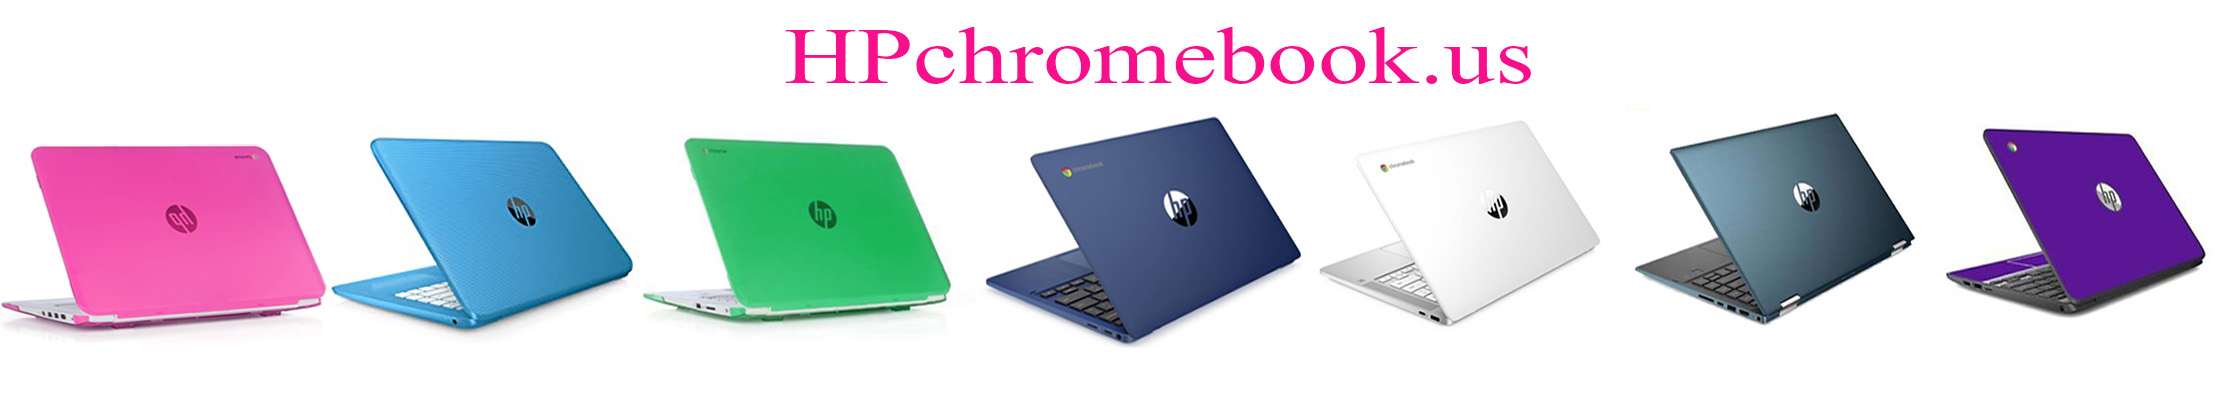 Best HP Chromebook in The US - For Students Study 1